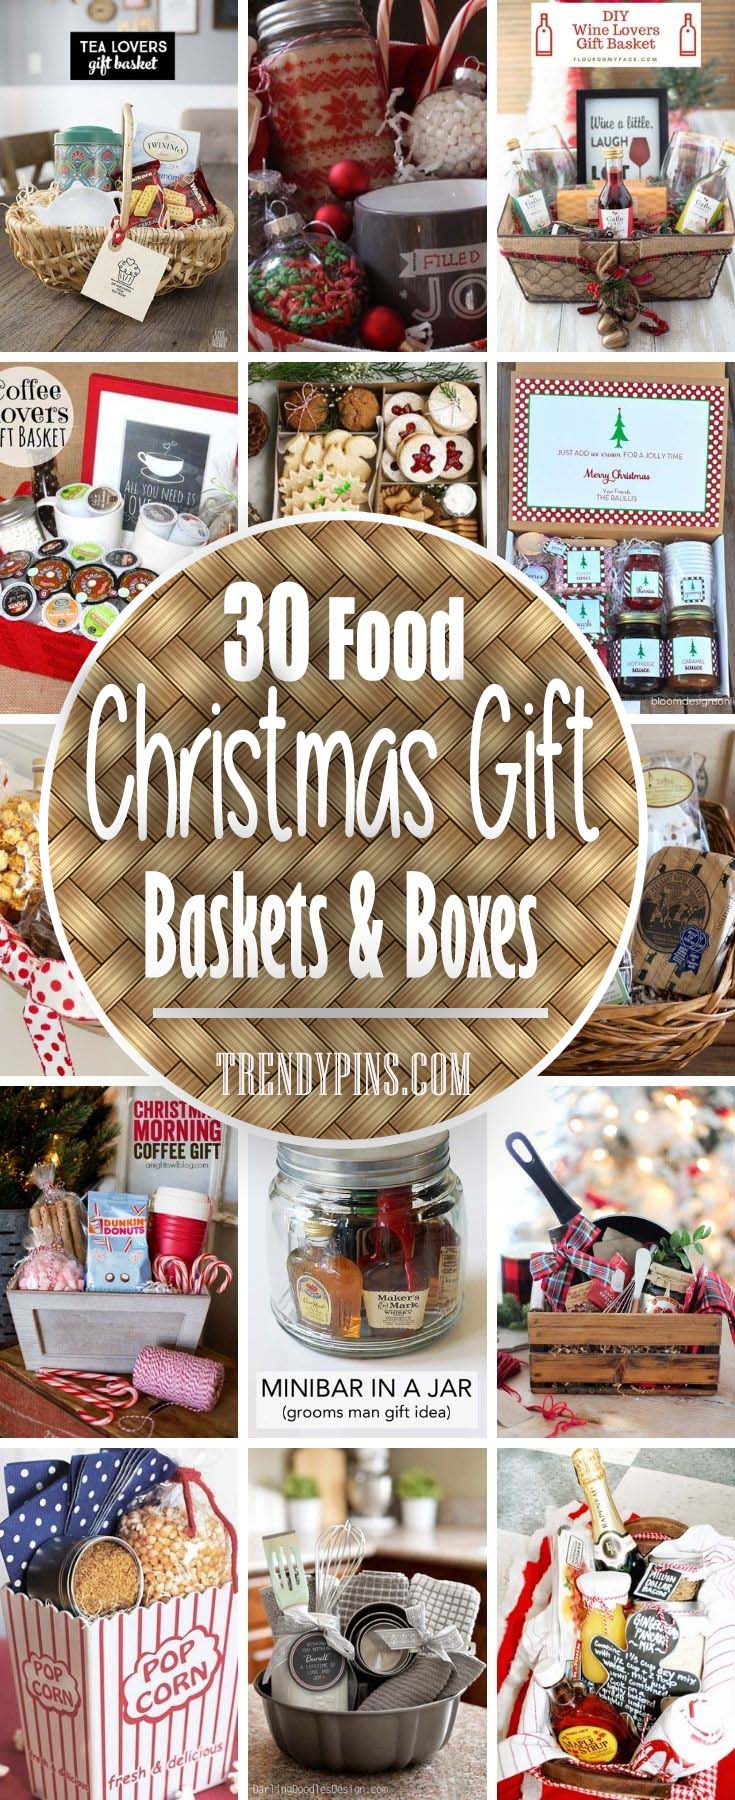 30 Food Christmas Gift Baskets And Boxes #Christmas #food #gifts #trendypins